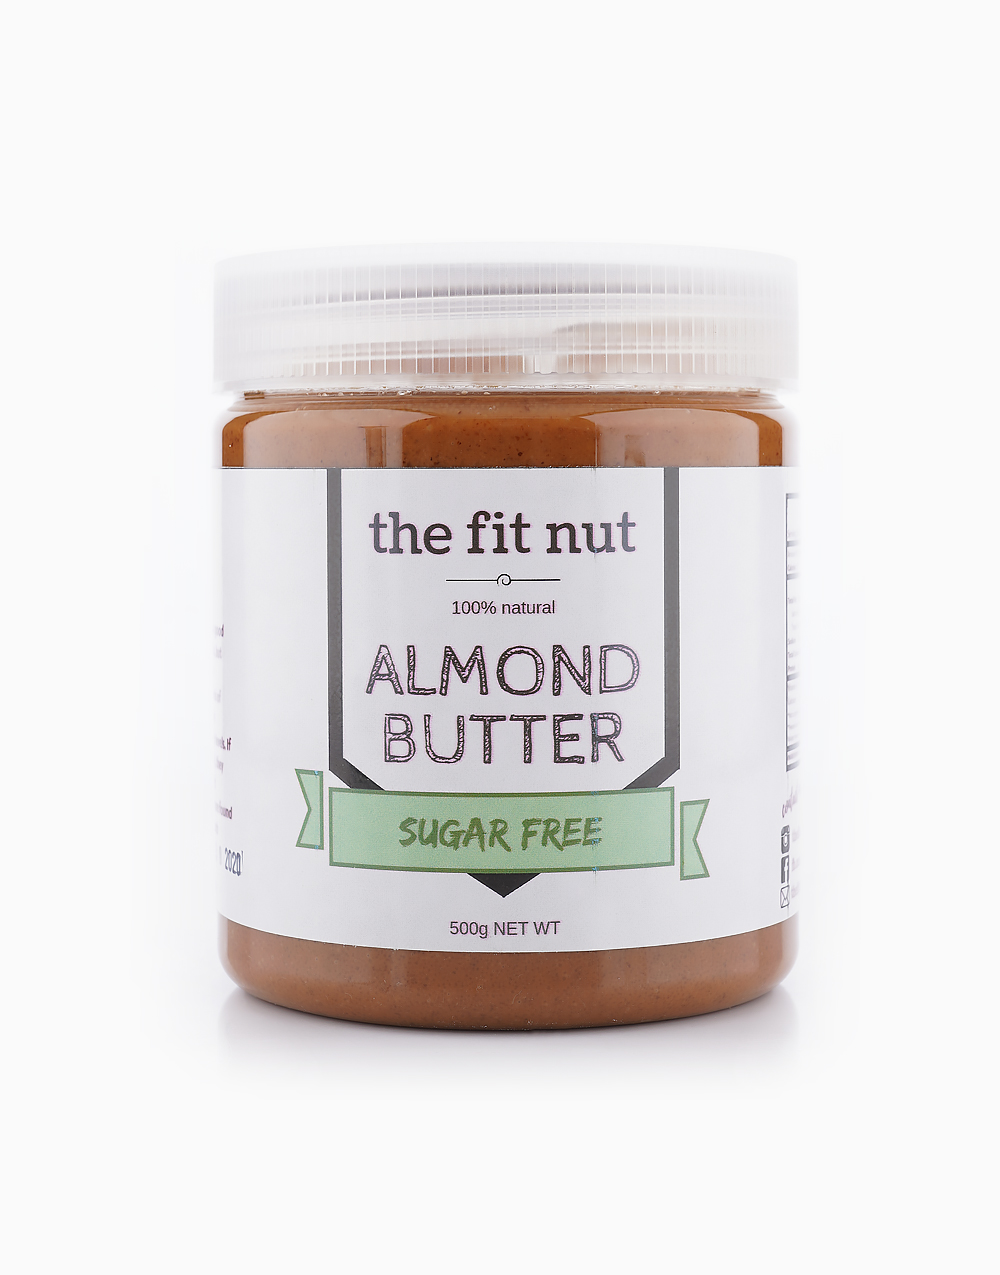 Sugar-Free Almond Butter (500g) by The Fit Nut PH